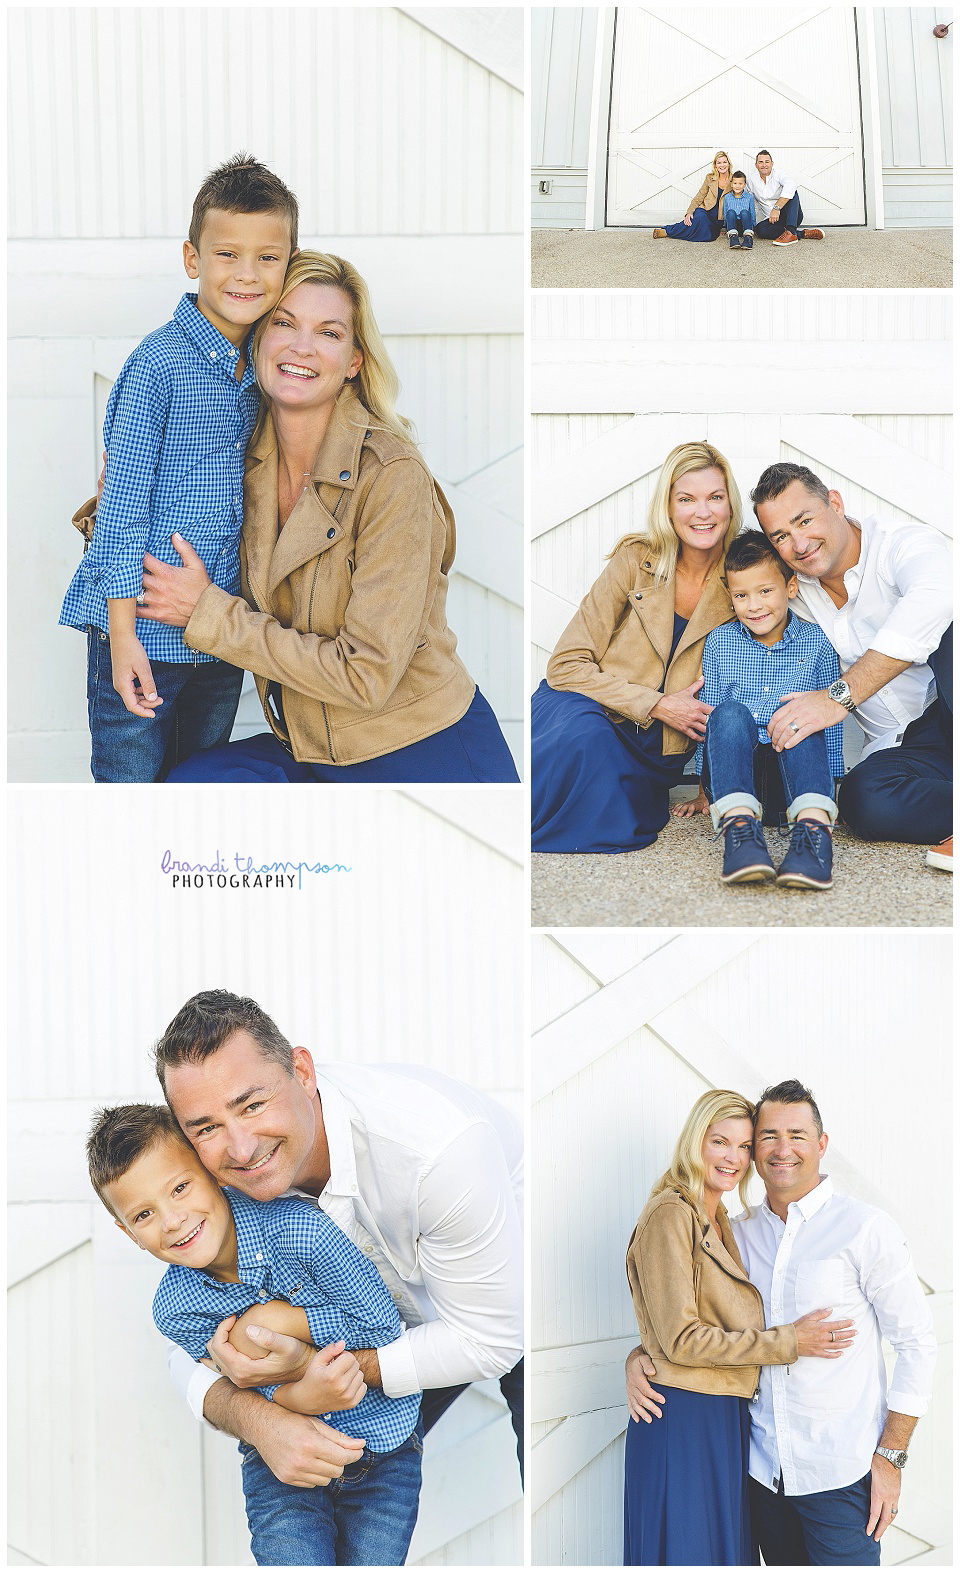 rustic family session in frisco, tx with dad, mom and school age boy